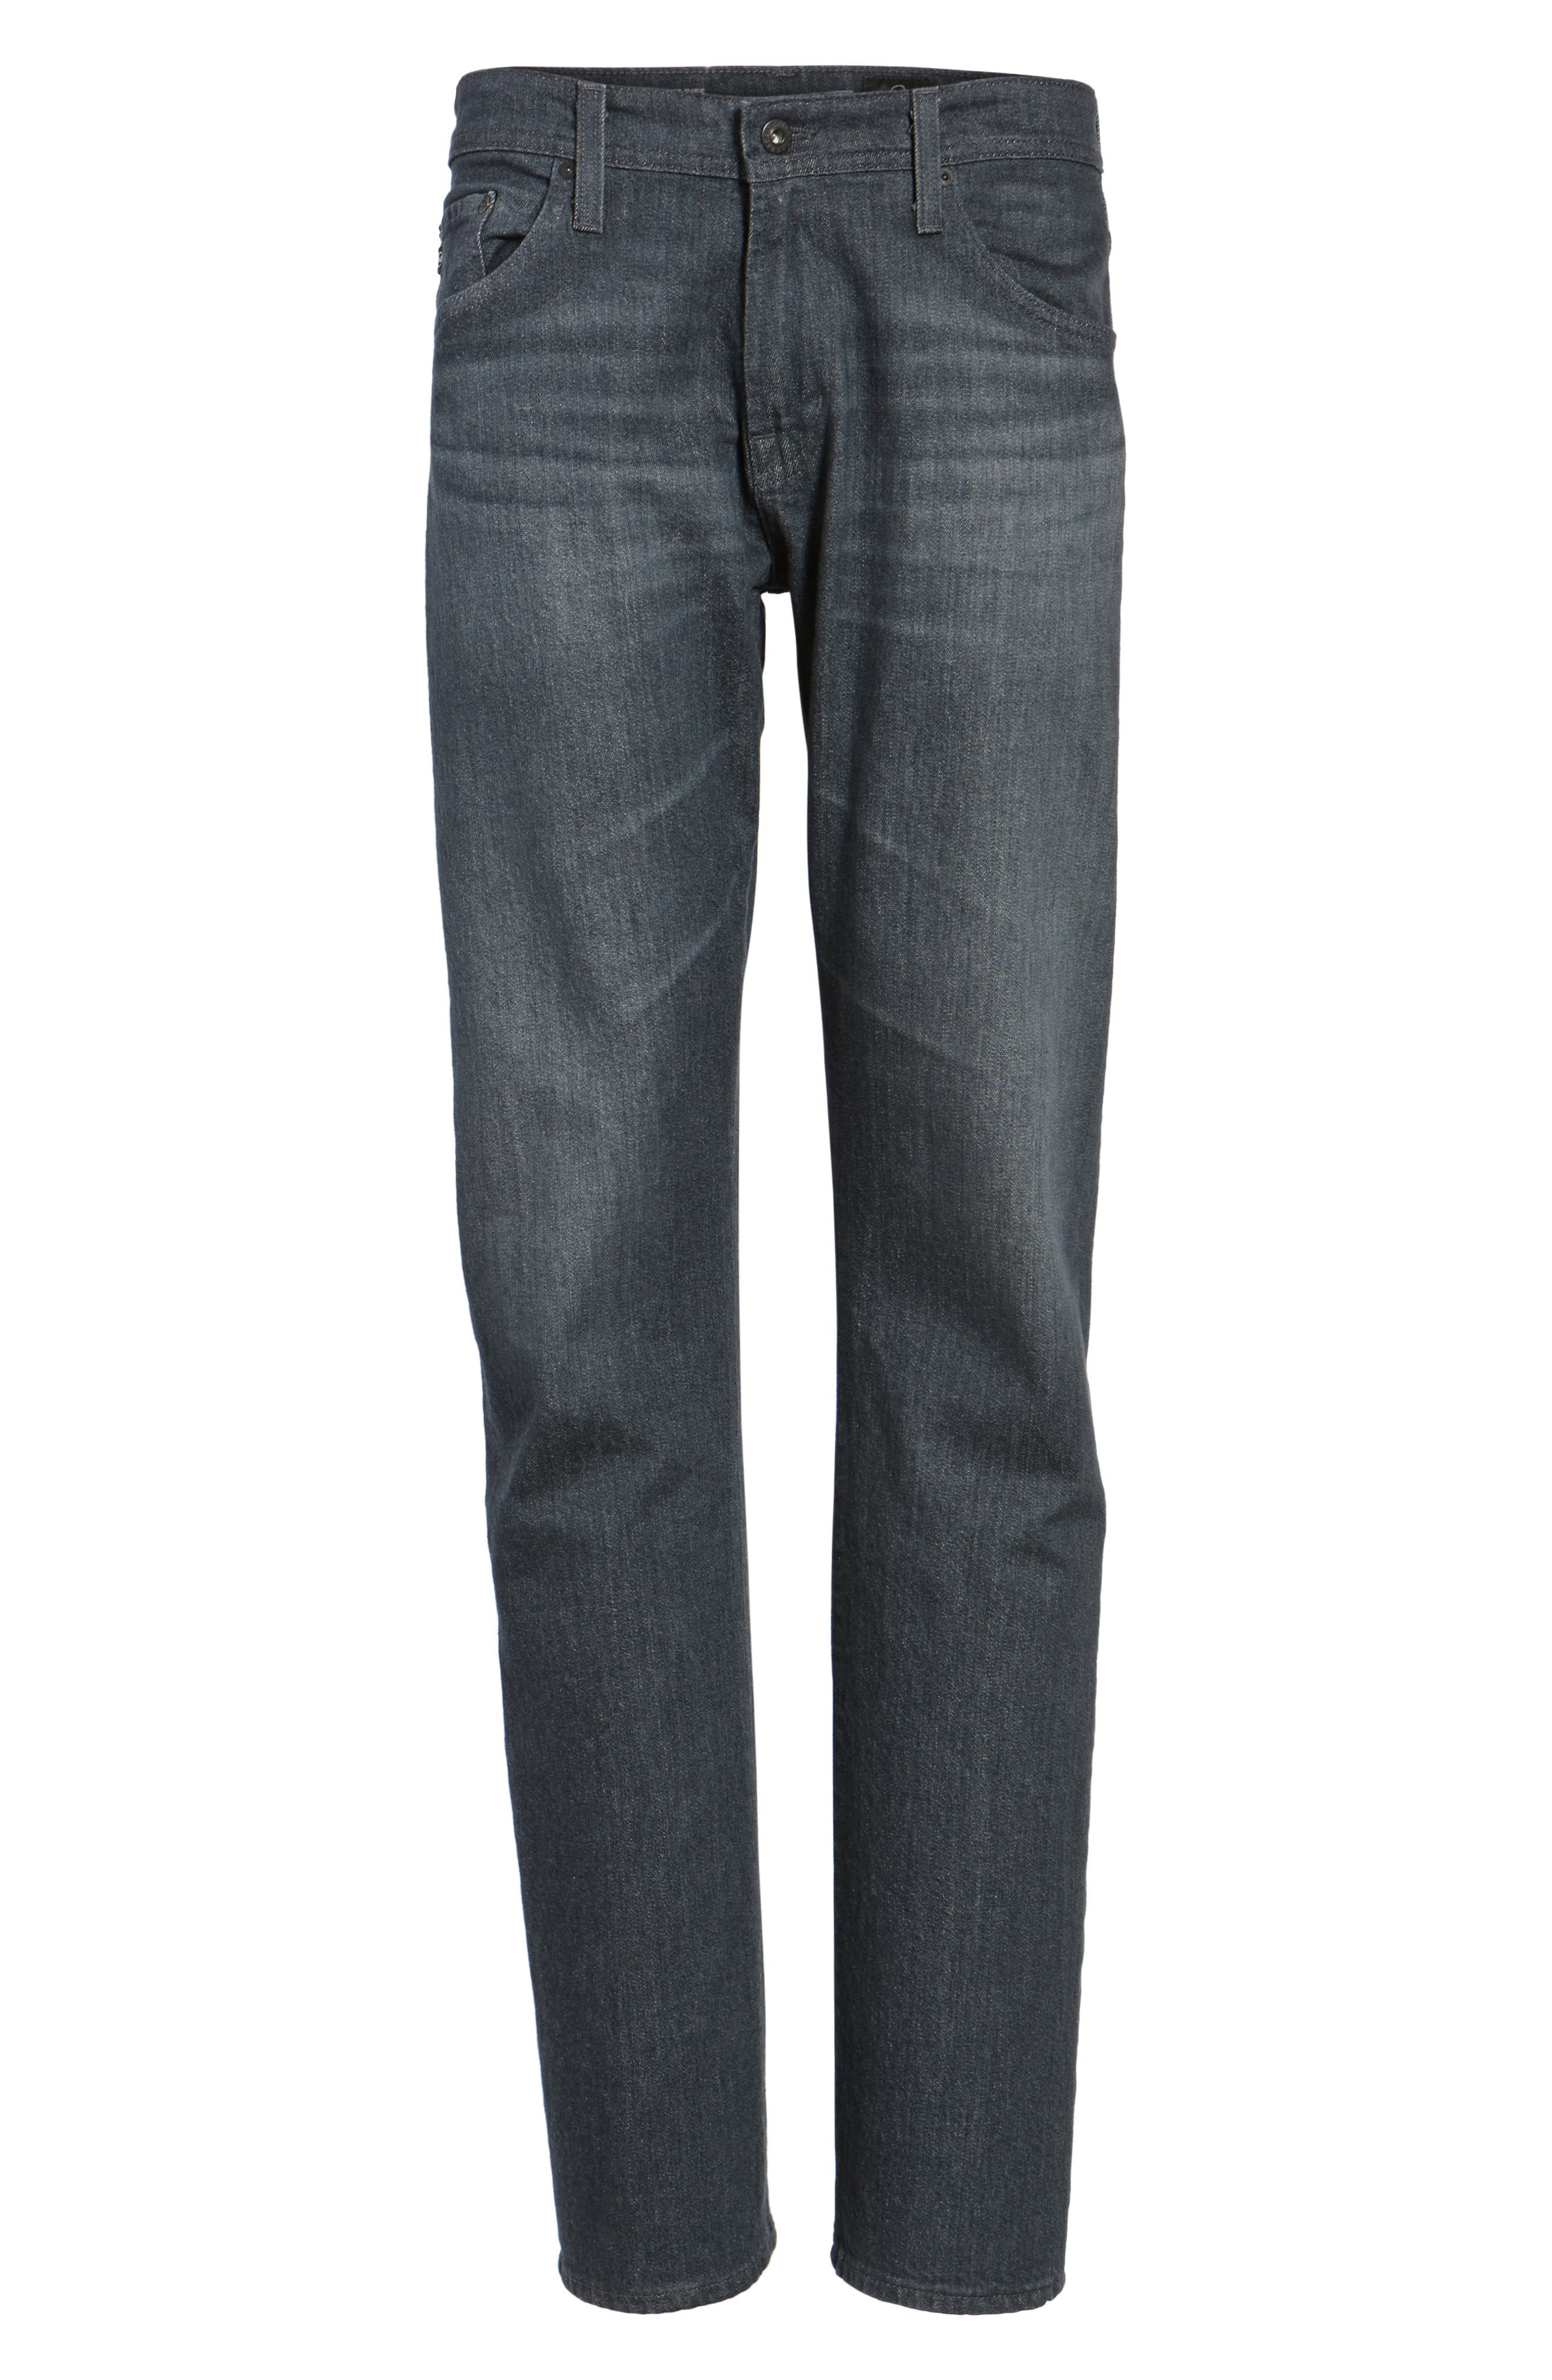 Ives Straight Fit Jeans,                             Alternate thumbnail 6, color,                             015